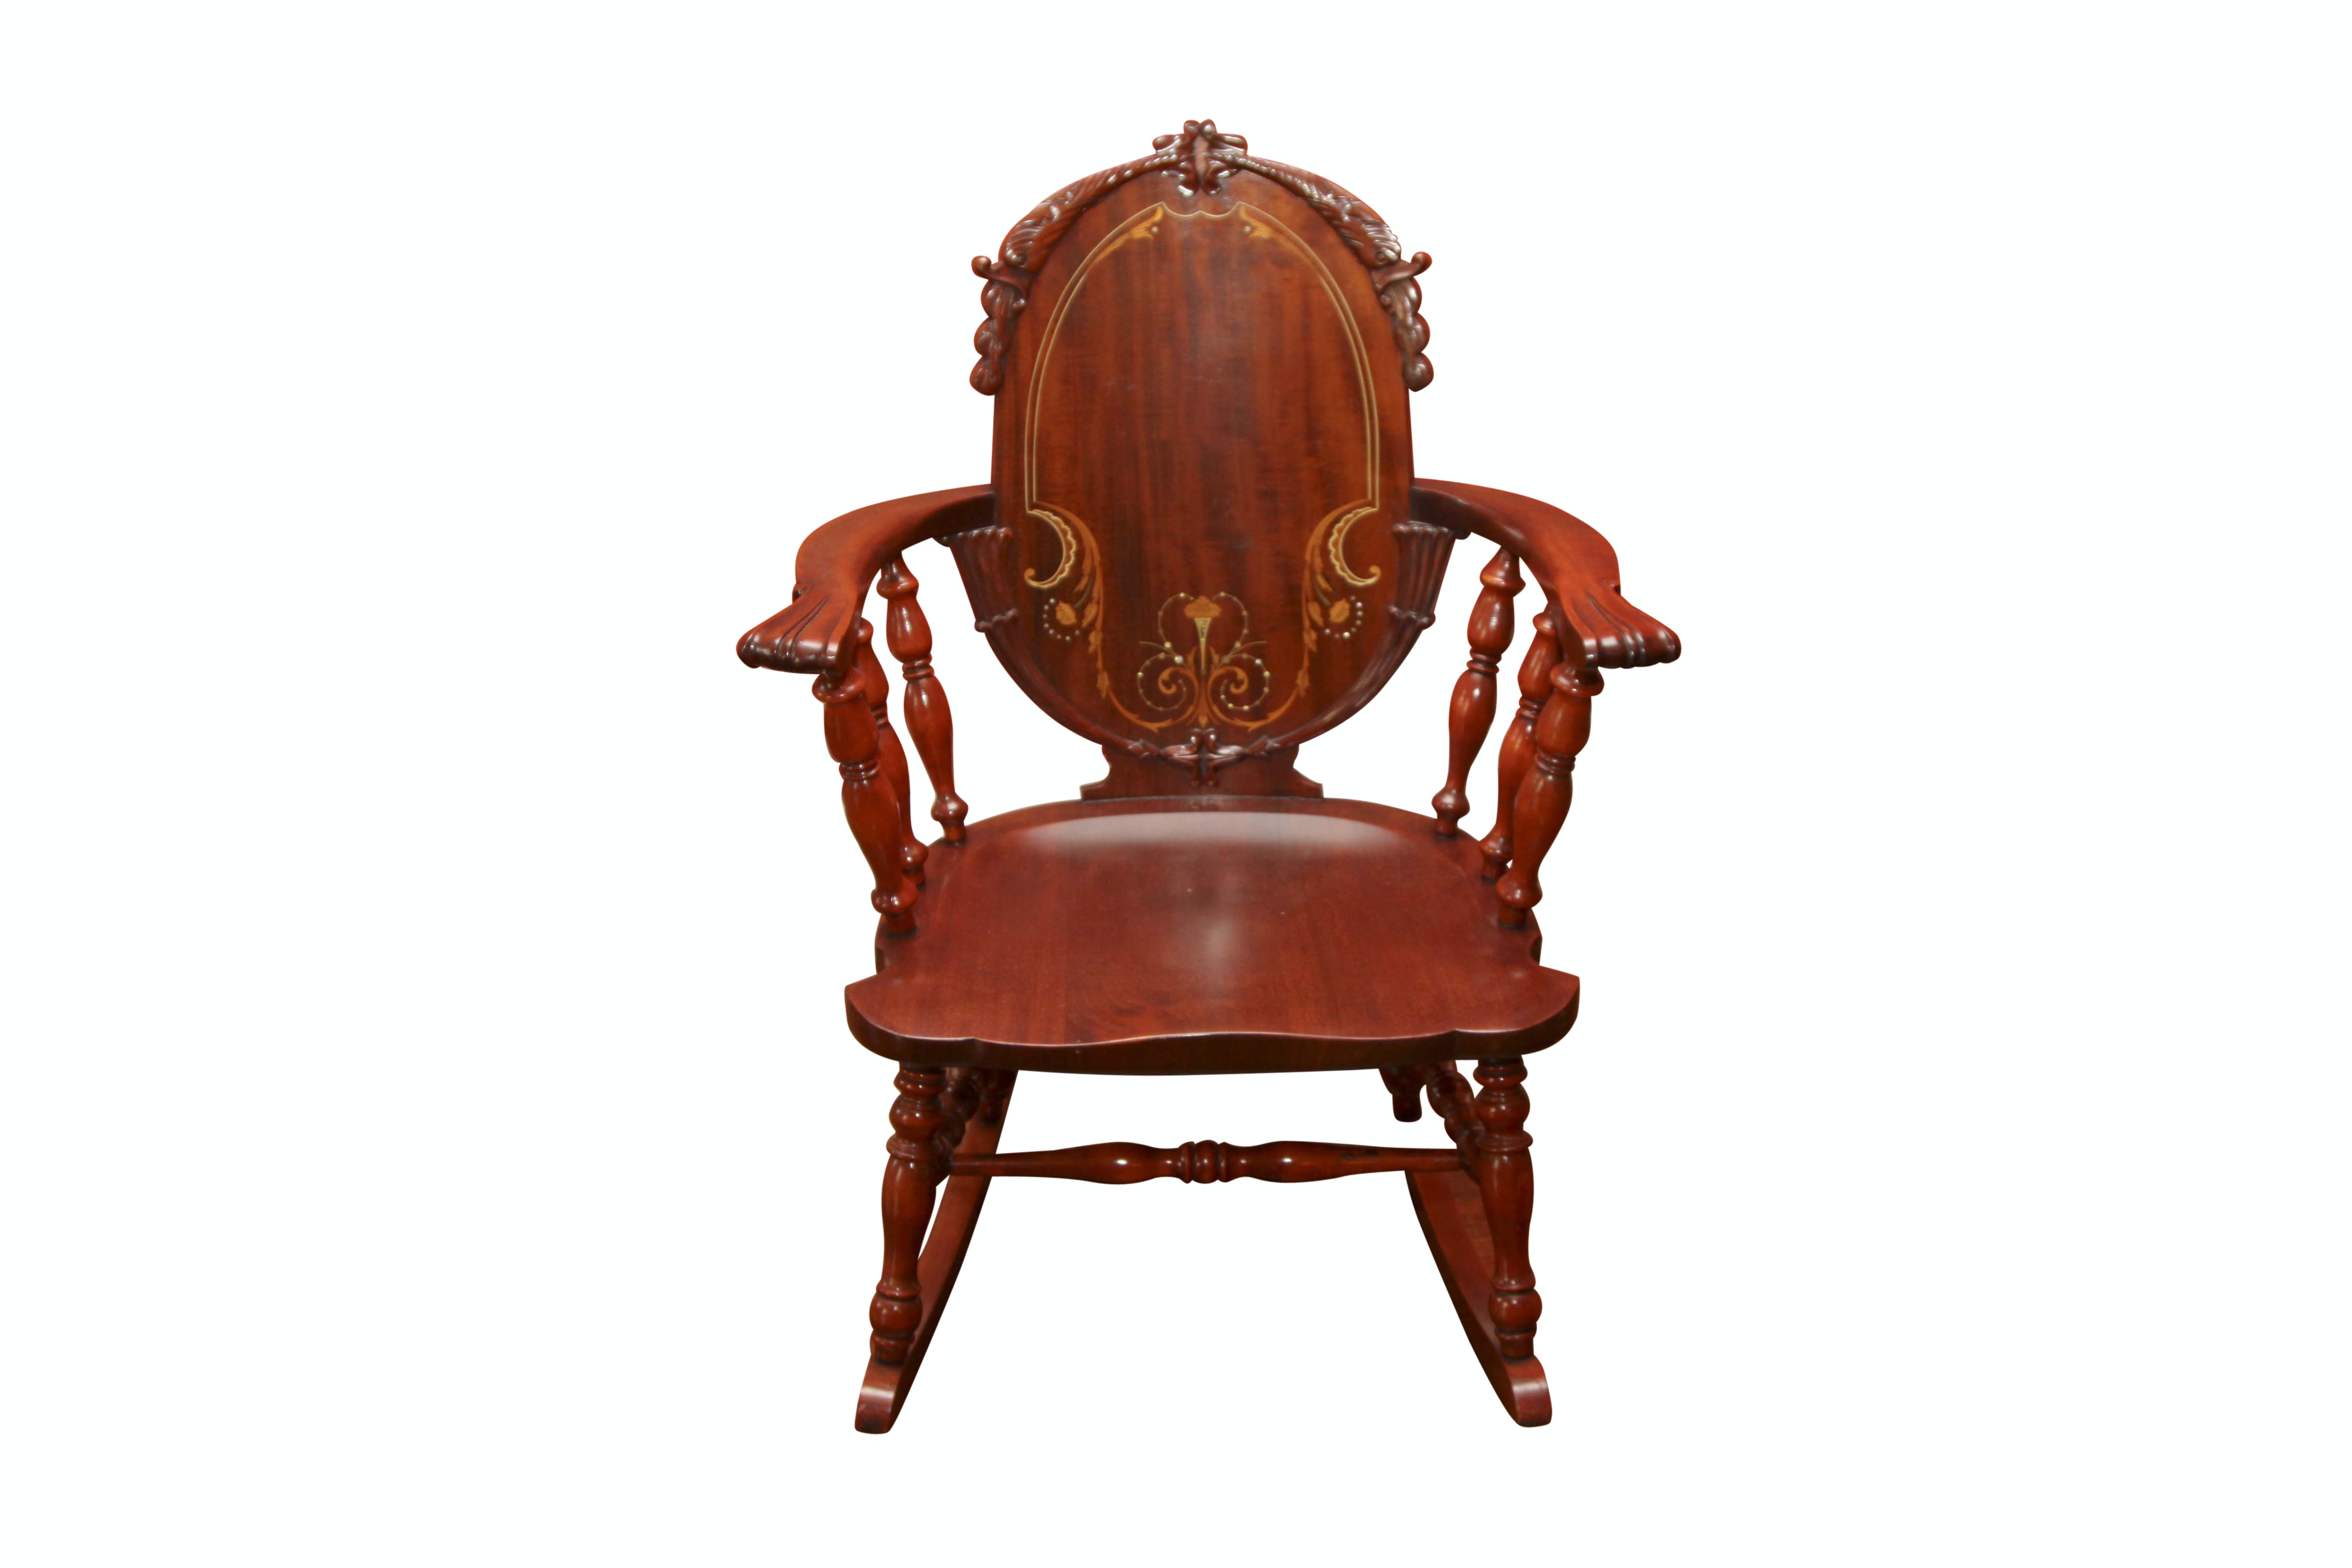 Antique Robert Mitchell Rocking Chair with Marquetry and Mother of Pearl Inlay